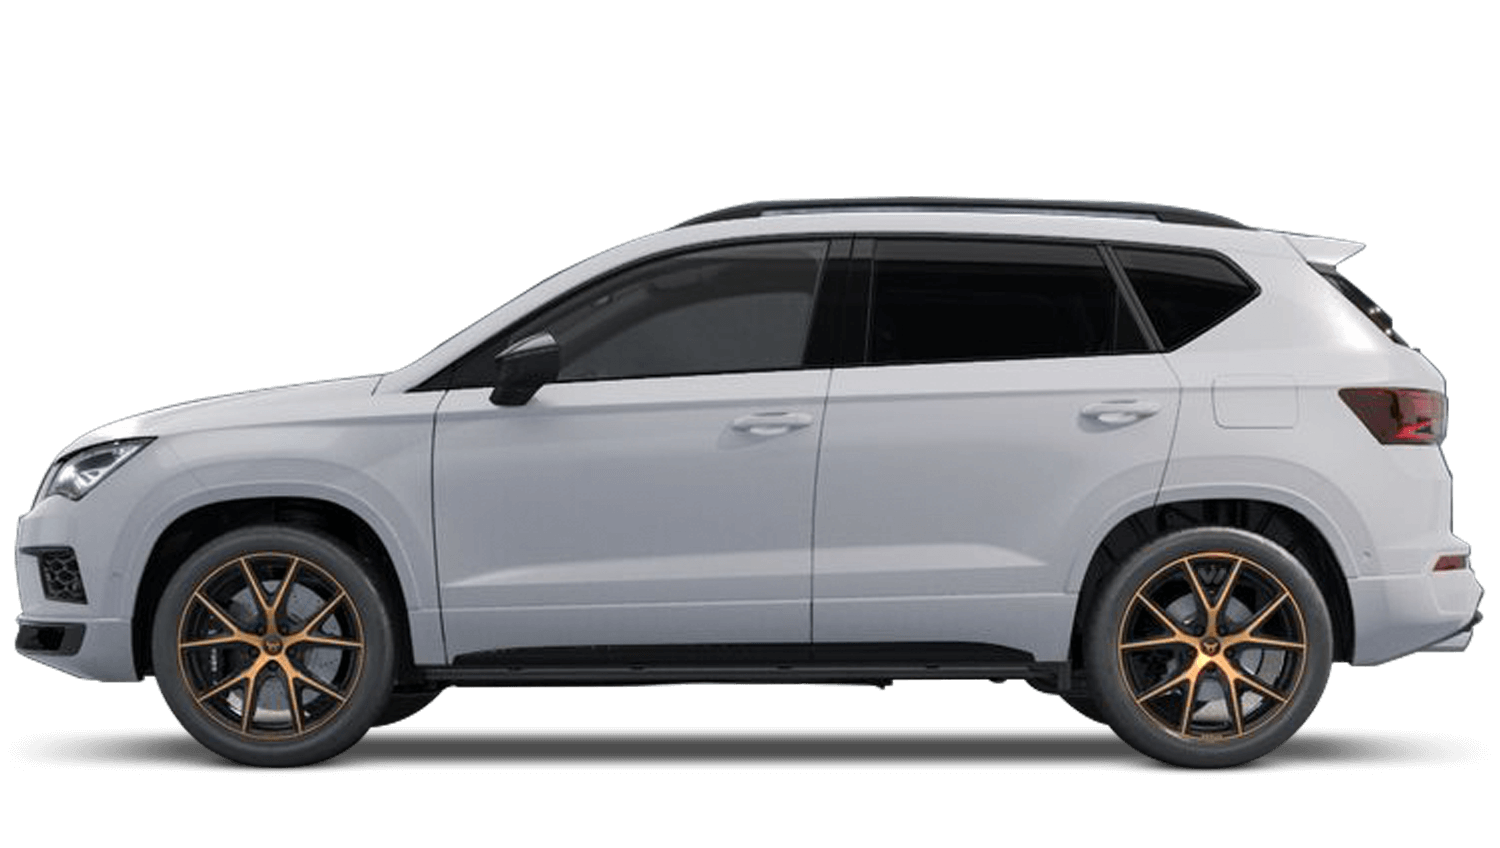 Nevada White (Metallic) CUPRA Ateca